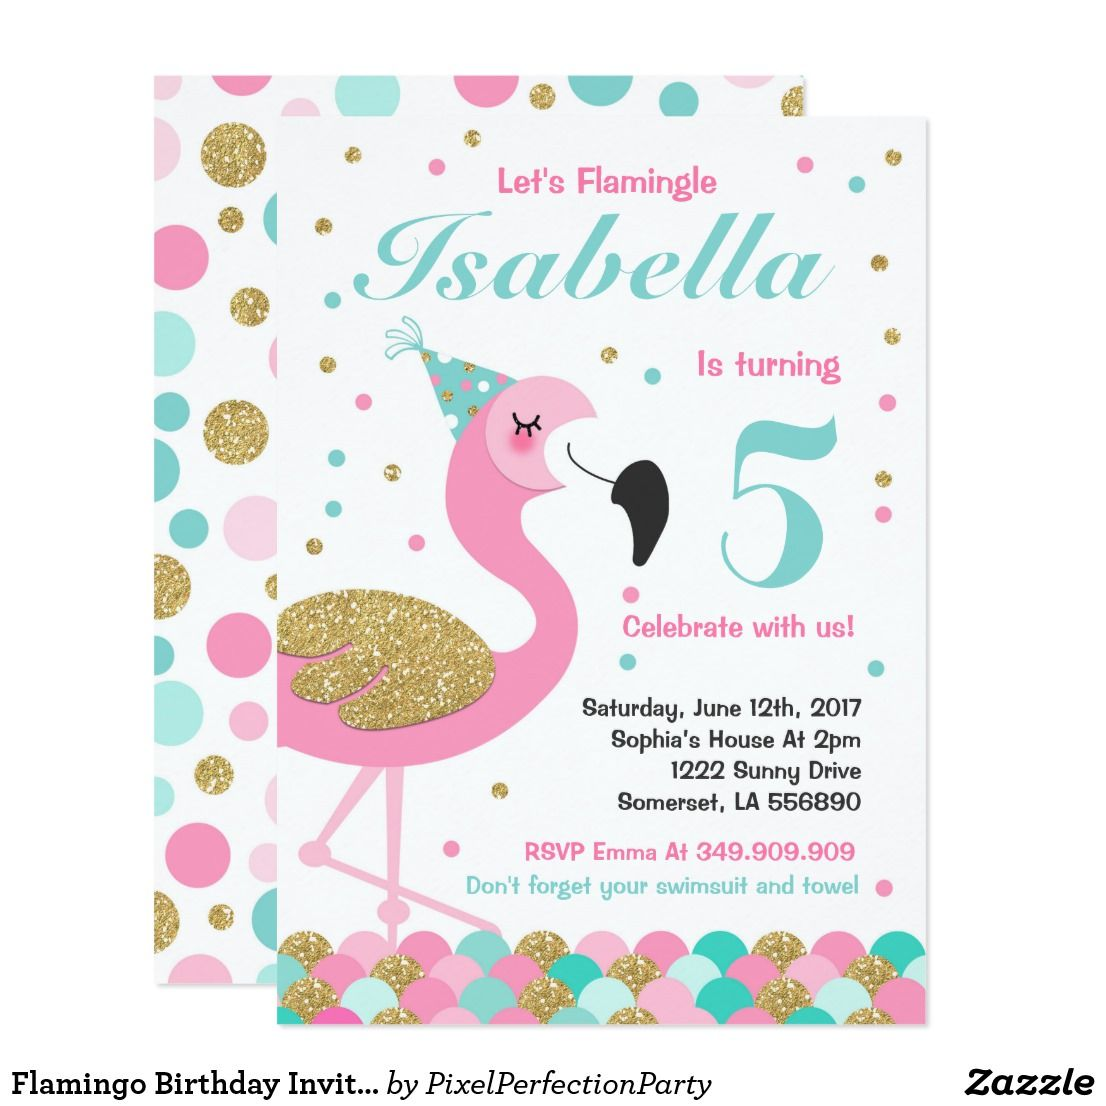 flamingo geburtstag karten einladung einladungskarte vorlage party karte einladungskarten. Black Bedroom Furniture Sets. Home Design Ideas